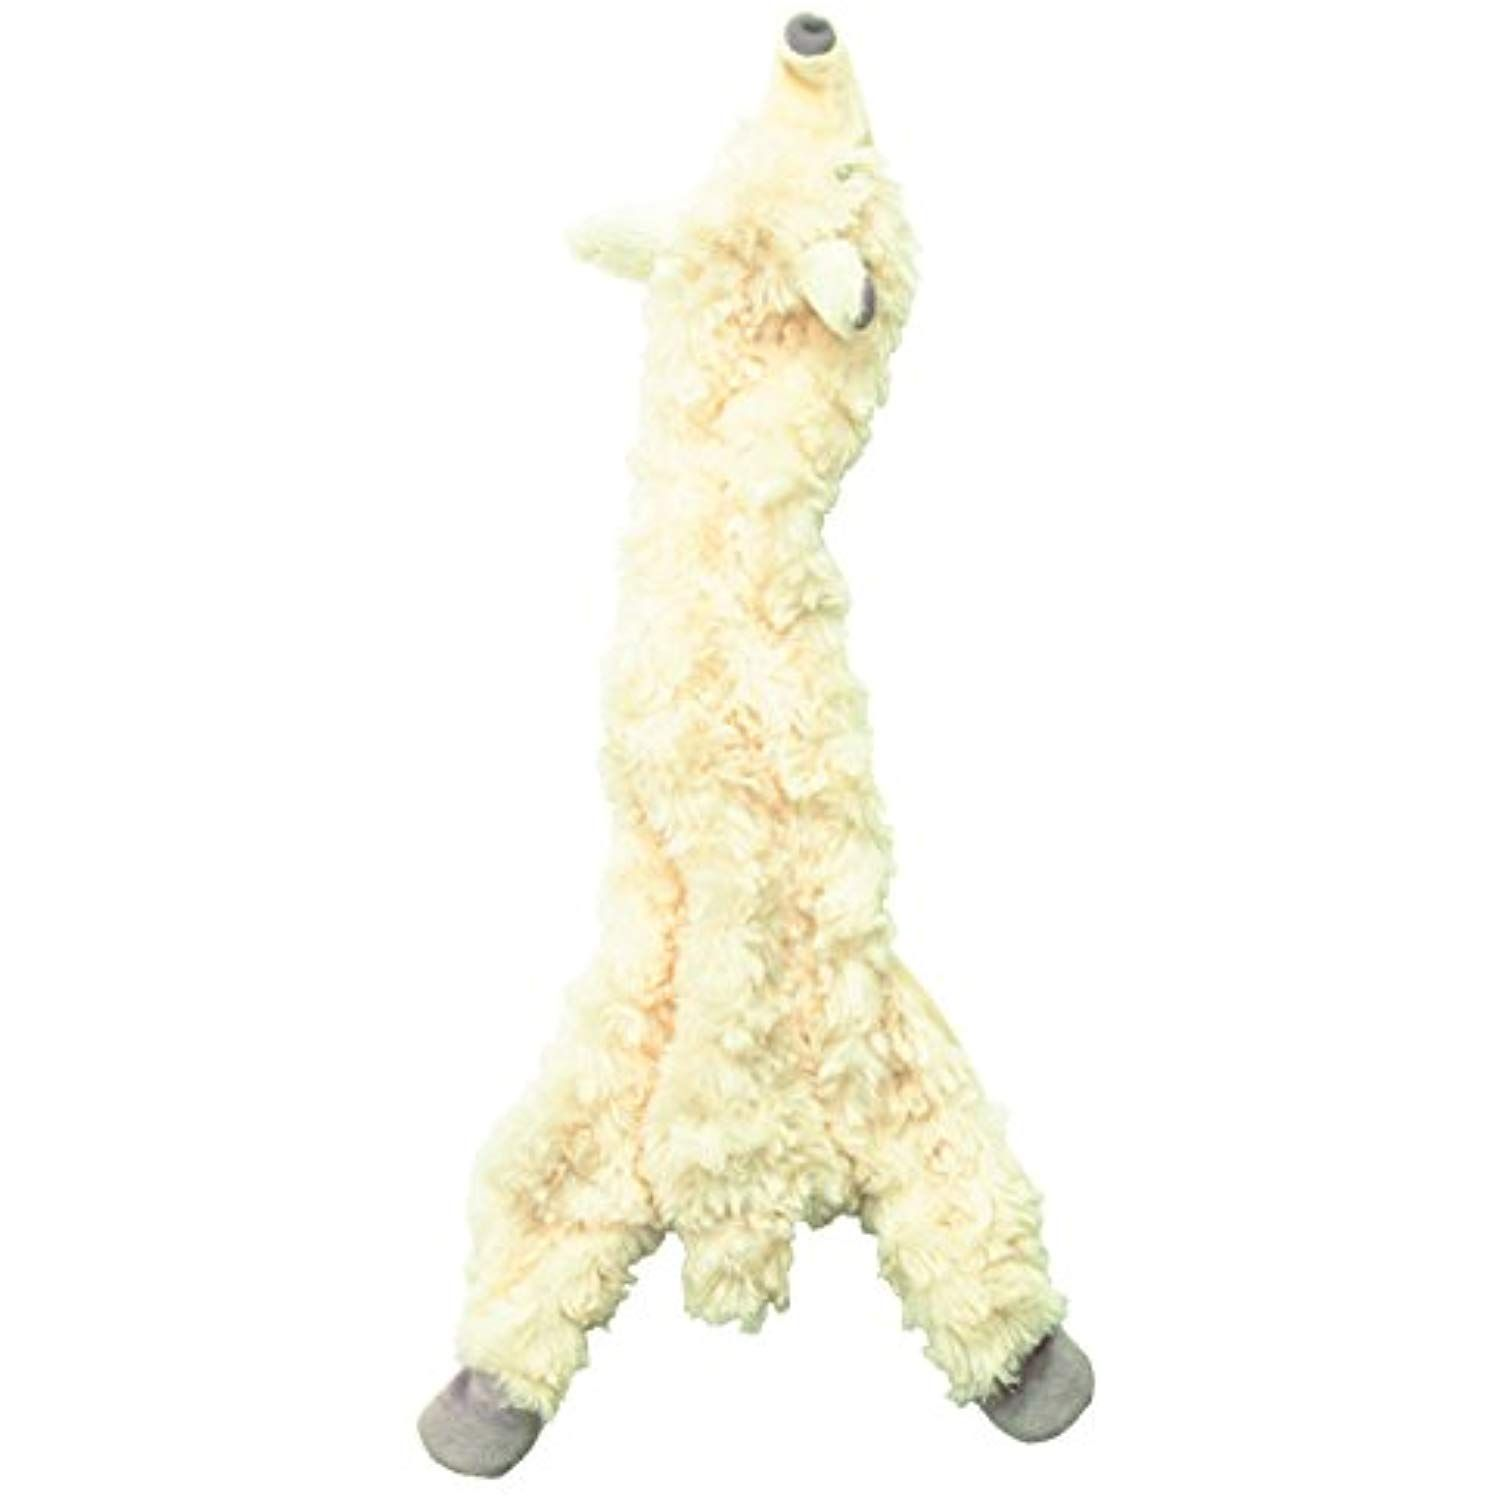 Ethical 5716 Skinneeez Wooly Sheep Stuffing Less Dog Toy 23 Inch